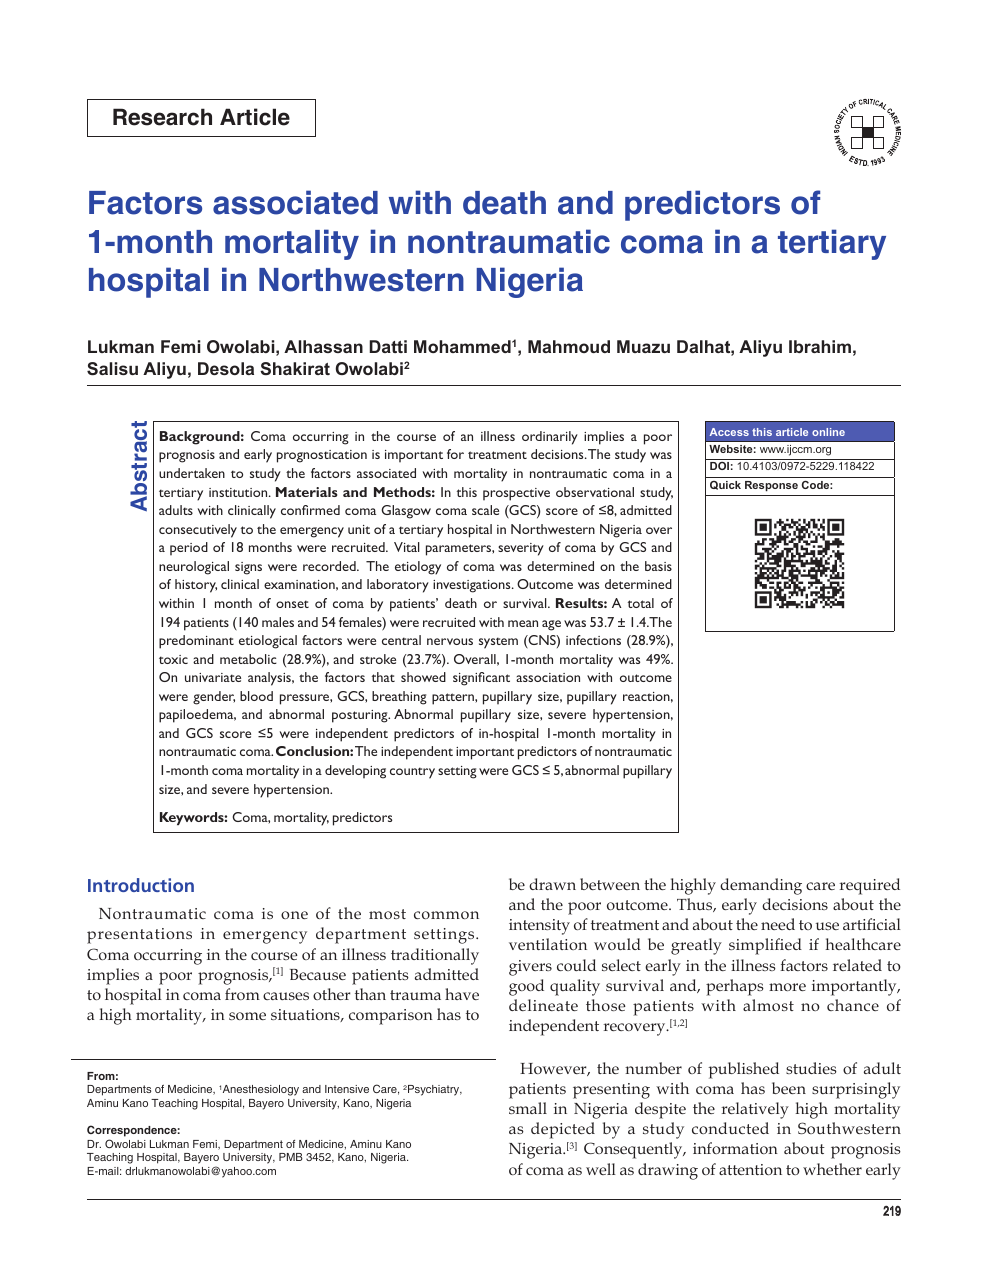 Factors associated with death and predictors of 1-month